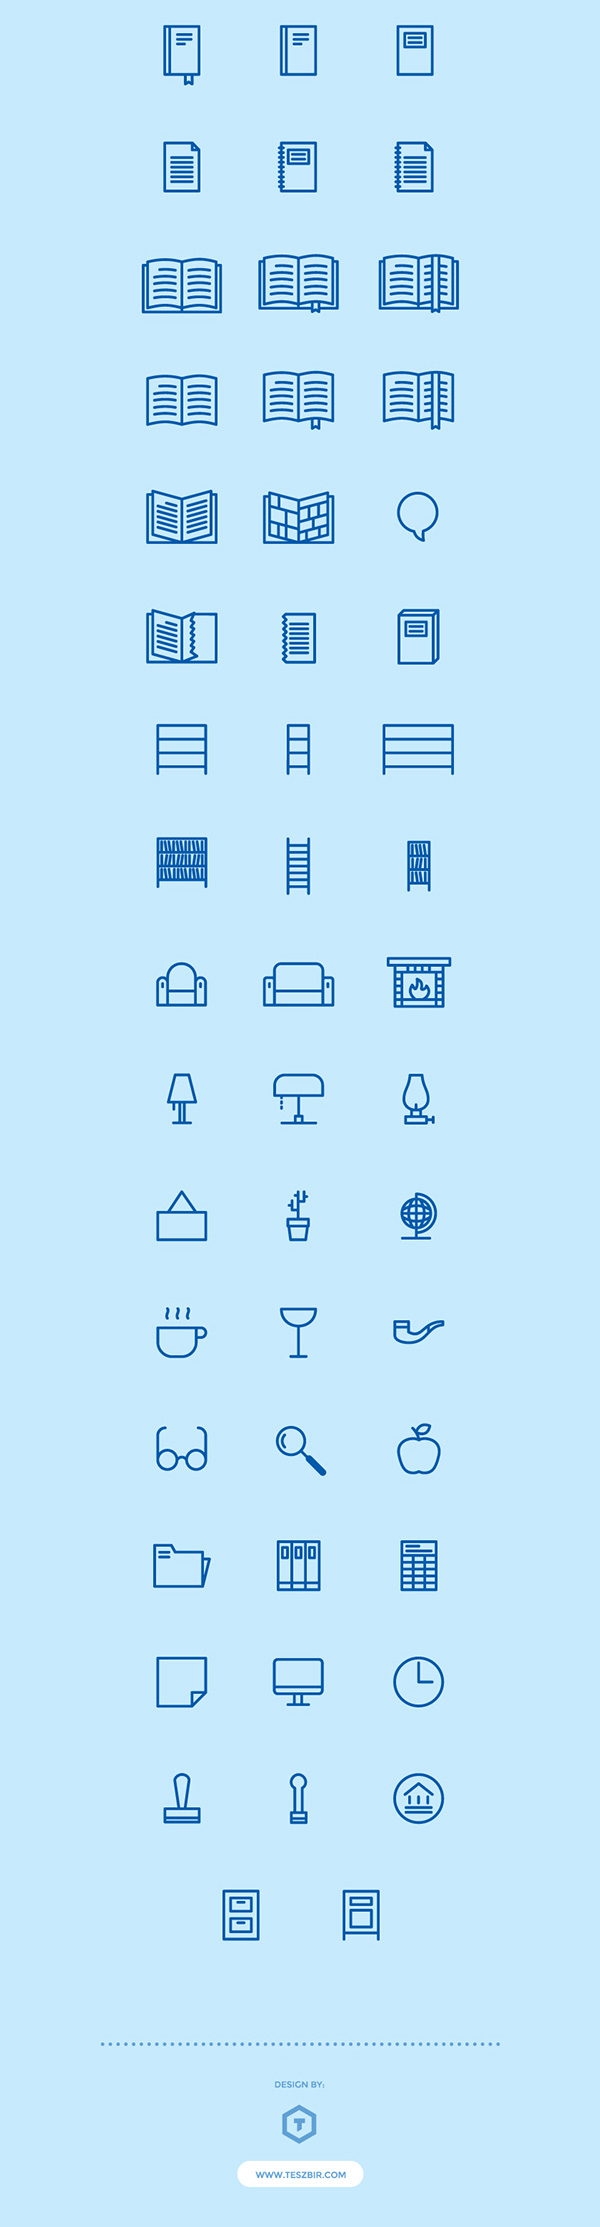 2.Free Home and Public Library Icons